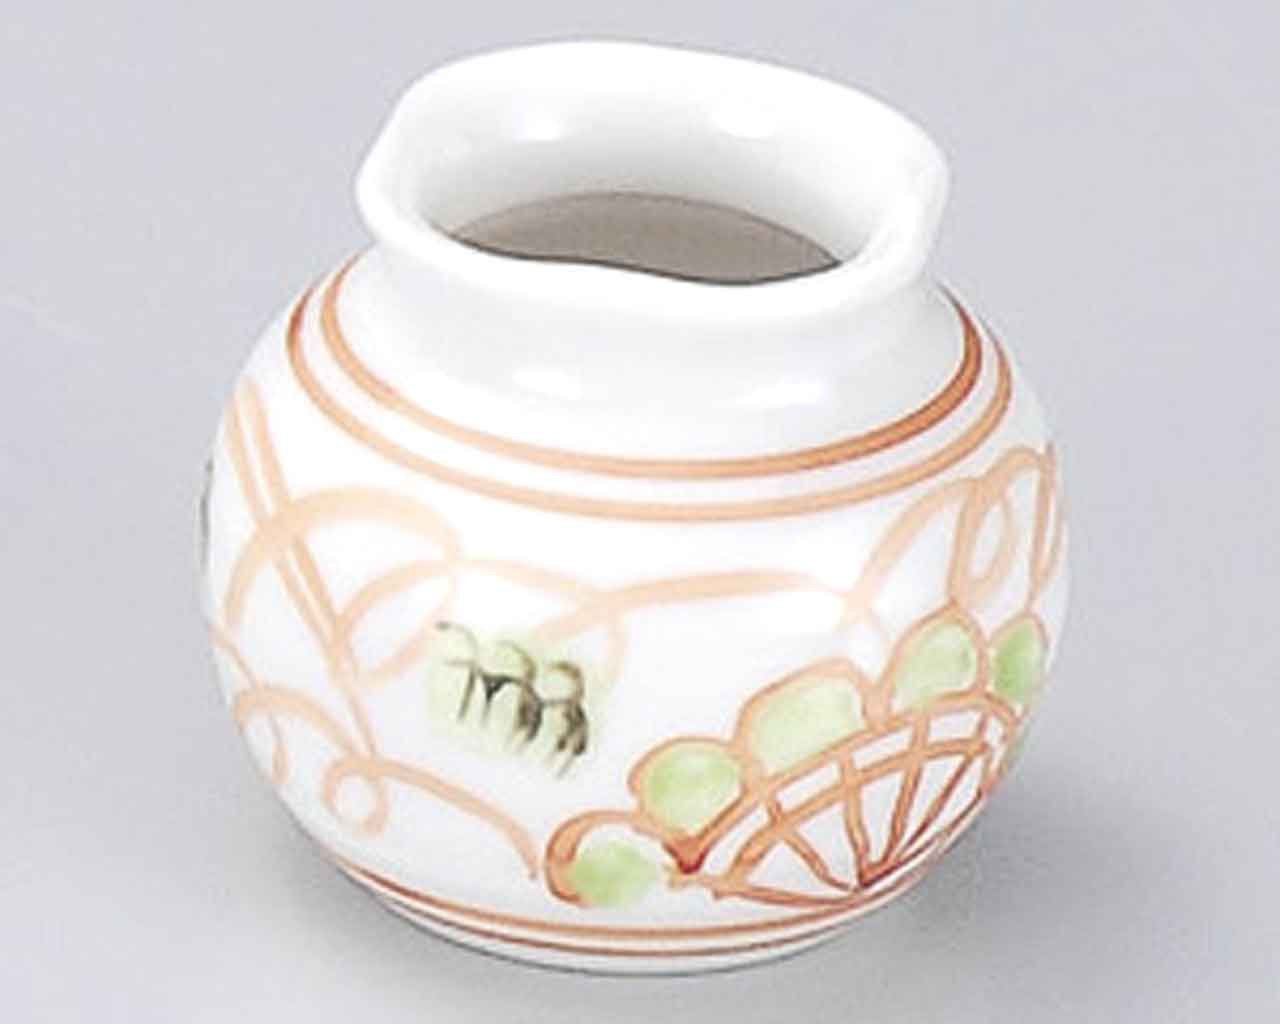 Tansai Flower 2inch Set of 5 Toothpick holders White porcelain Made in Japan by Watou.asia